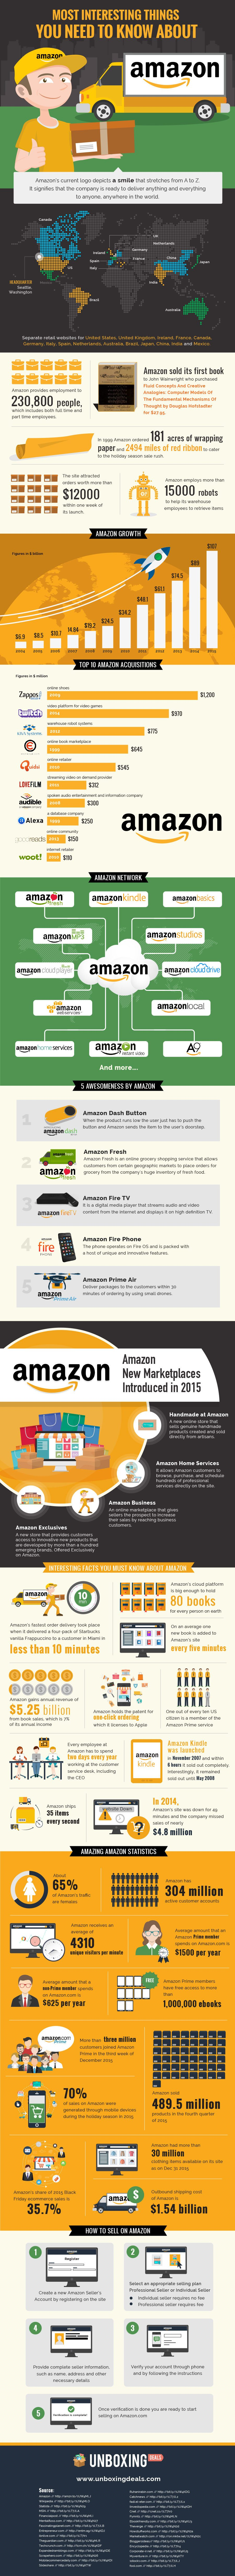 Most Interesting Things about Amazon